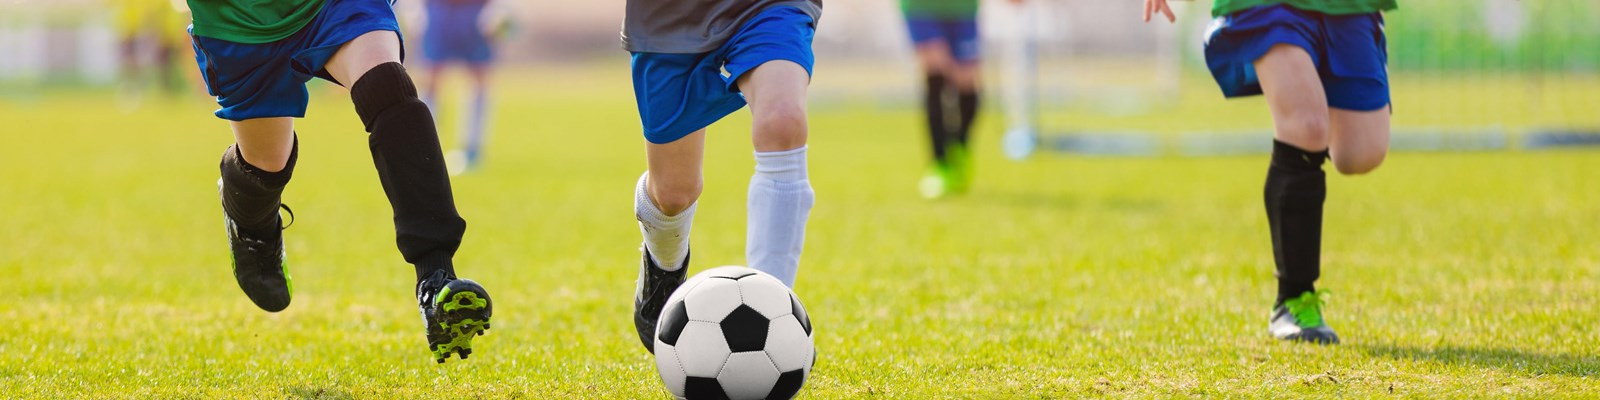 Youth Soccer, Recreational and competitive play soccer programs for kids.